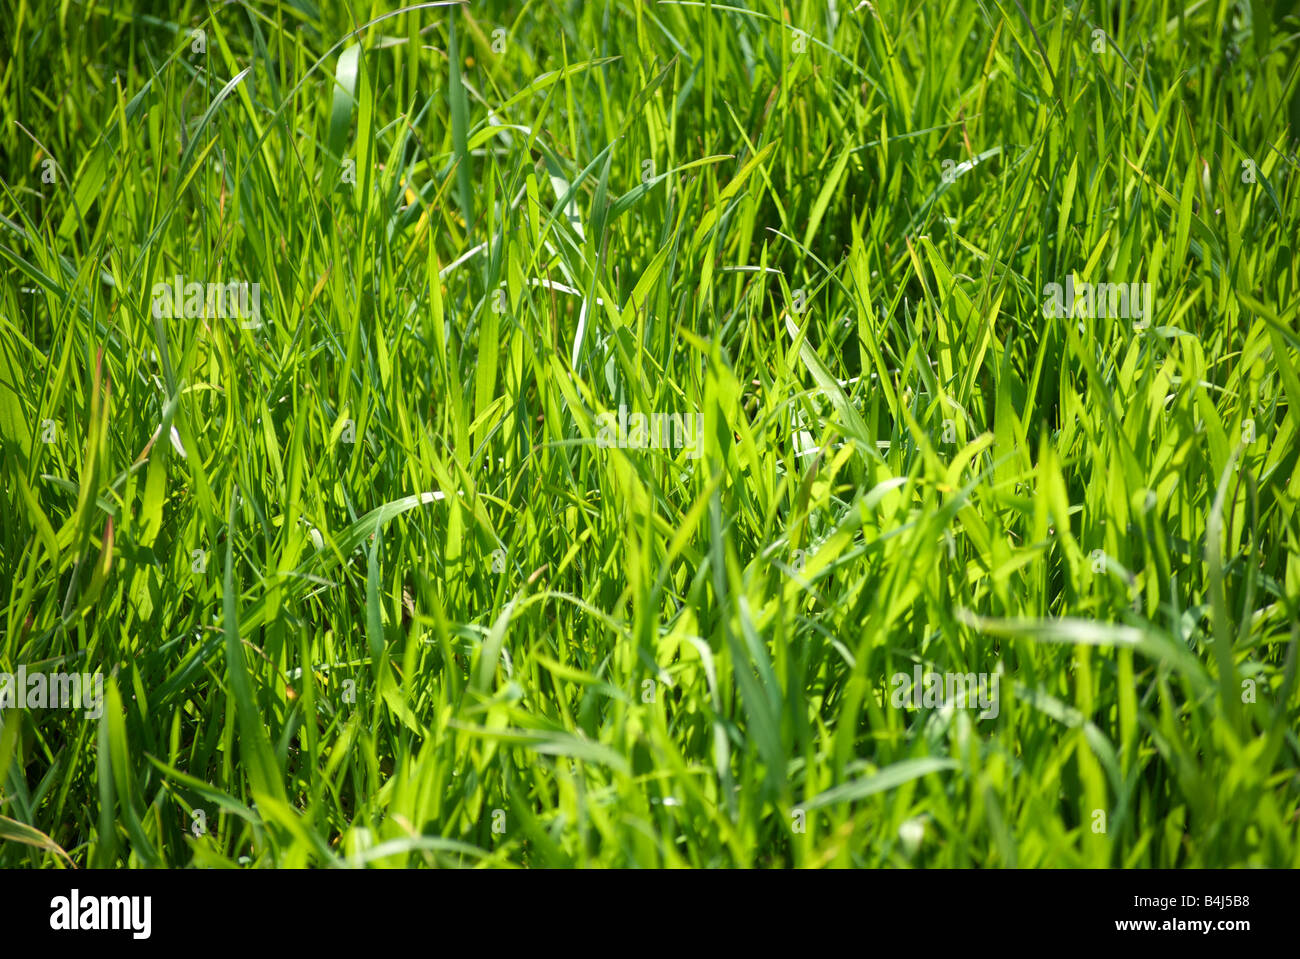 Sunlight shines strongly on a patch of green medium length grass. - Stock Image